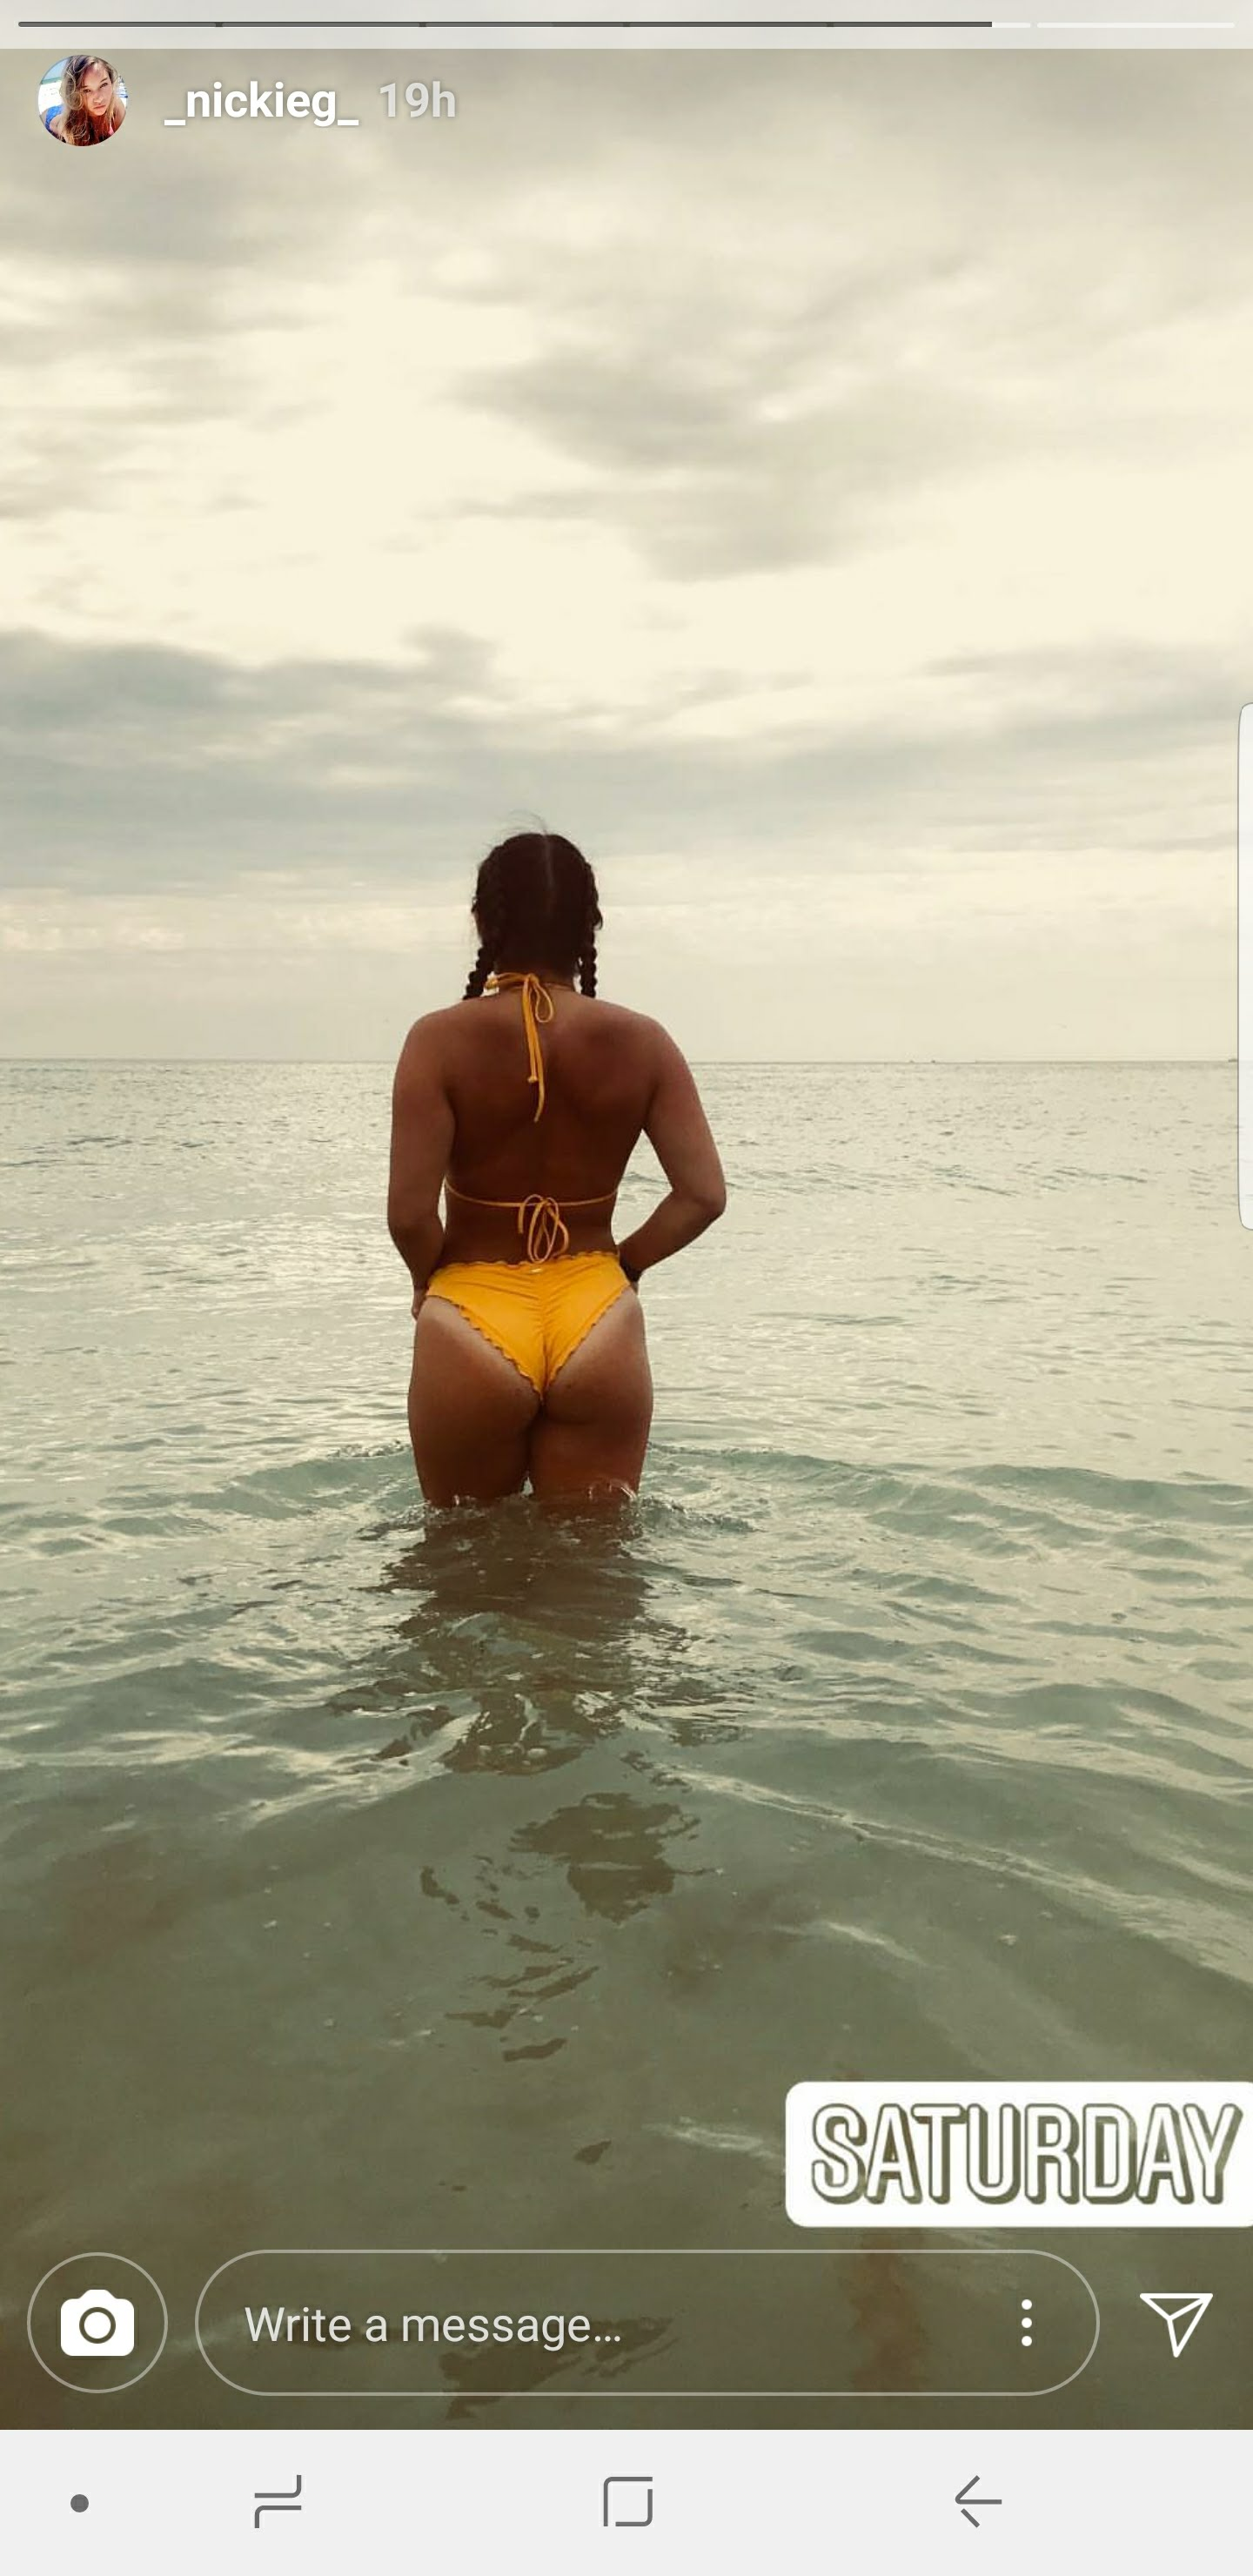 Agree, Girls with ass tan lines selfies